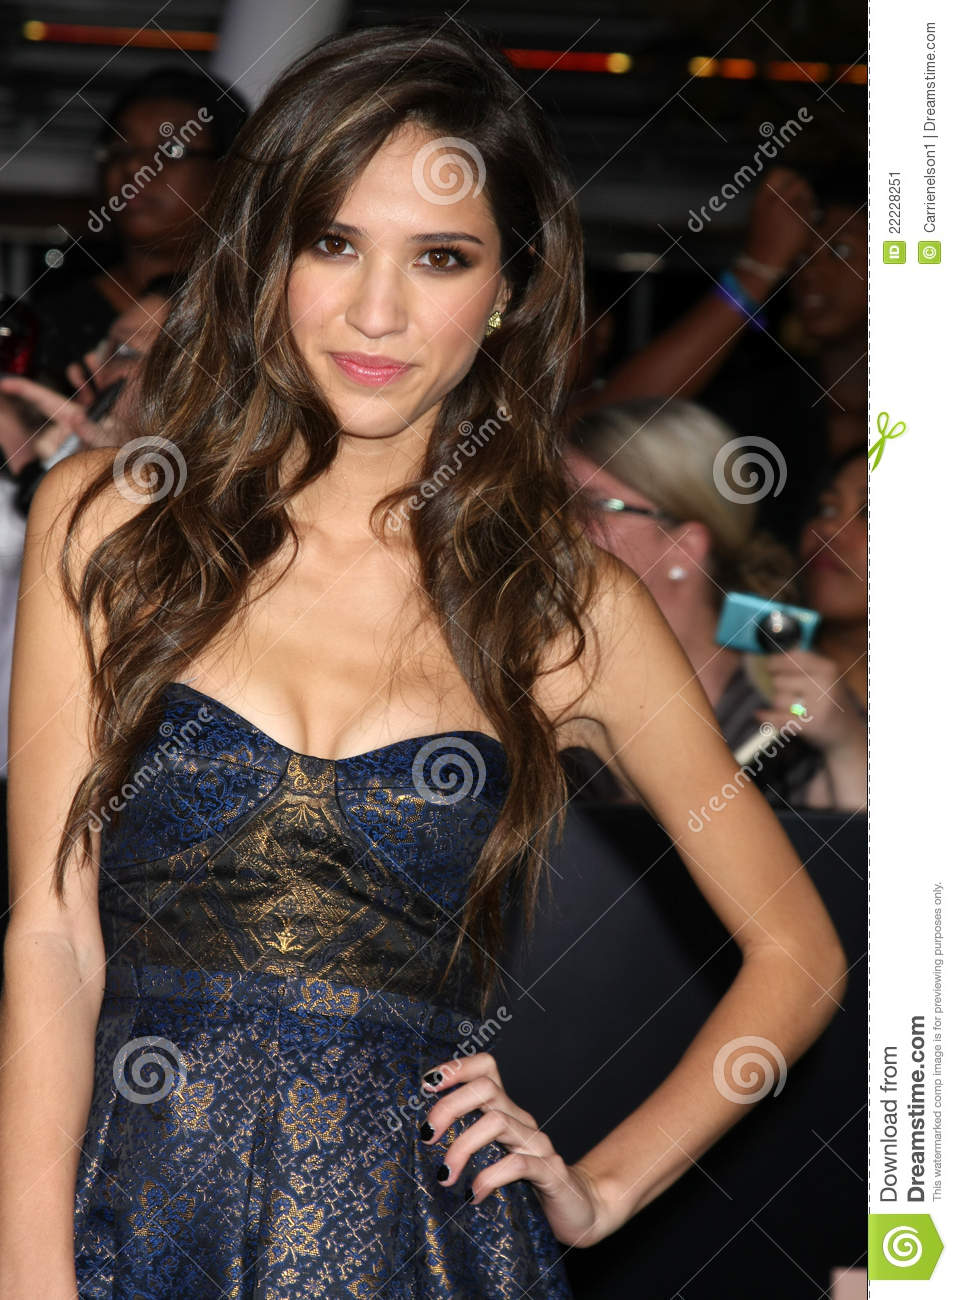 kelsey chow siblingskelsey chow age, kelsey chow movies and tv shows, kelsey chow imdb, kelsey chow spiderman, kelsey chow jean chow, kelsey chow instagram, kelsey chow and william moseley, kelsey chow net worth, kelsey chow twitter, kelsey chow hayley kiyoko, kelsey chow fansite, kelsey chow wdw, kelsey chow siblings, kelsey chow married, kelsey chow facebook, kelsey chow and stefanie scott fanfiction, kelsey chow now, kelsey chow dating history, kelsey chow bio